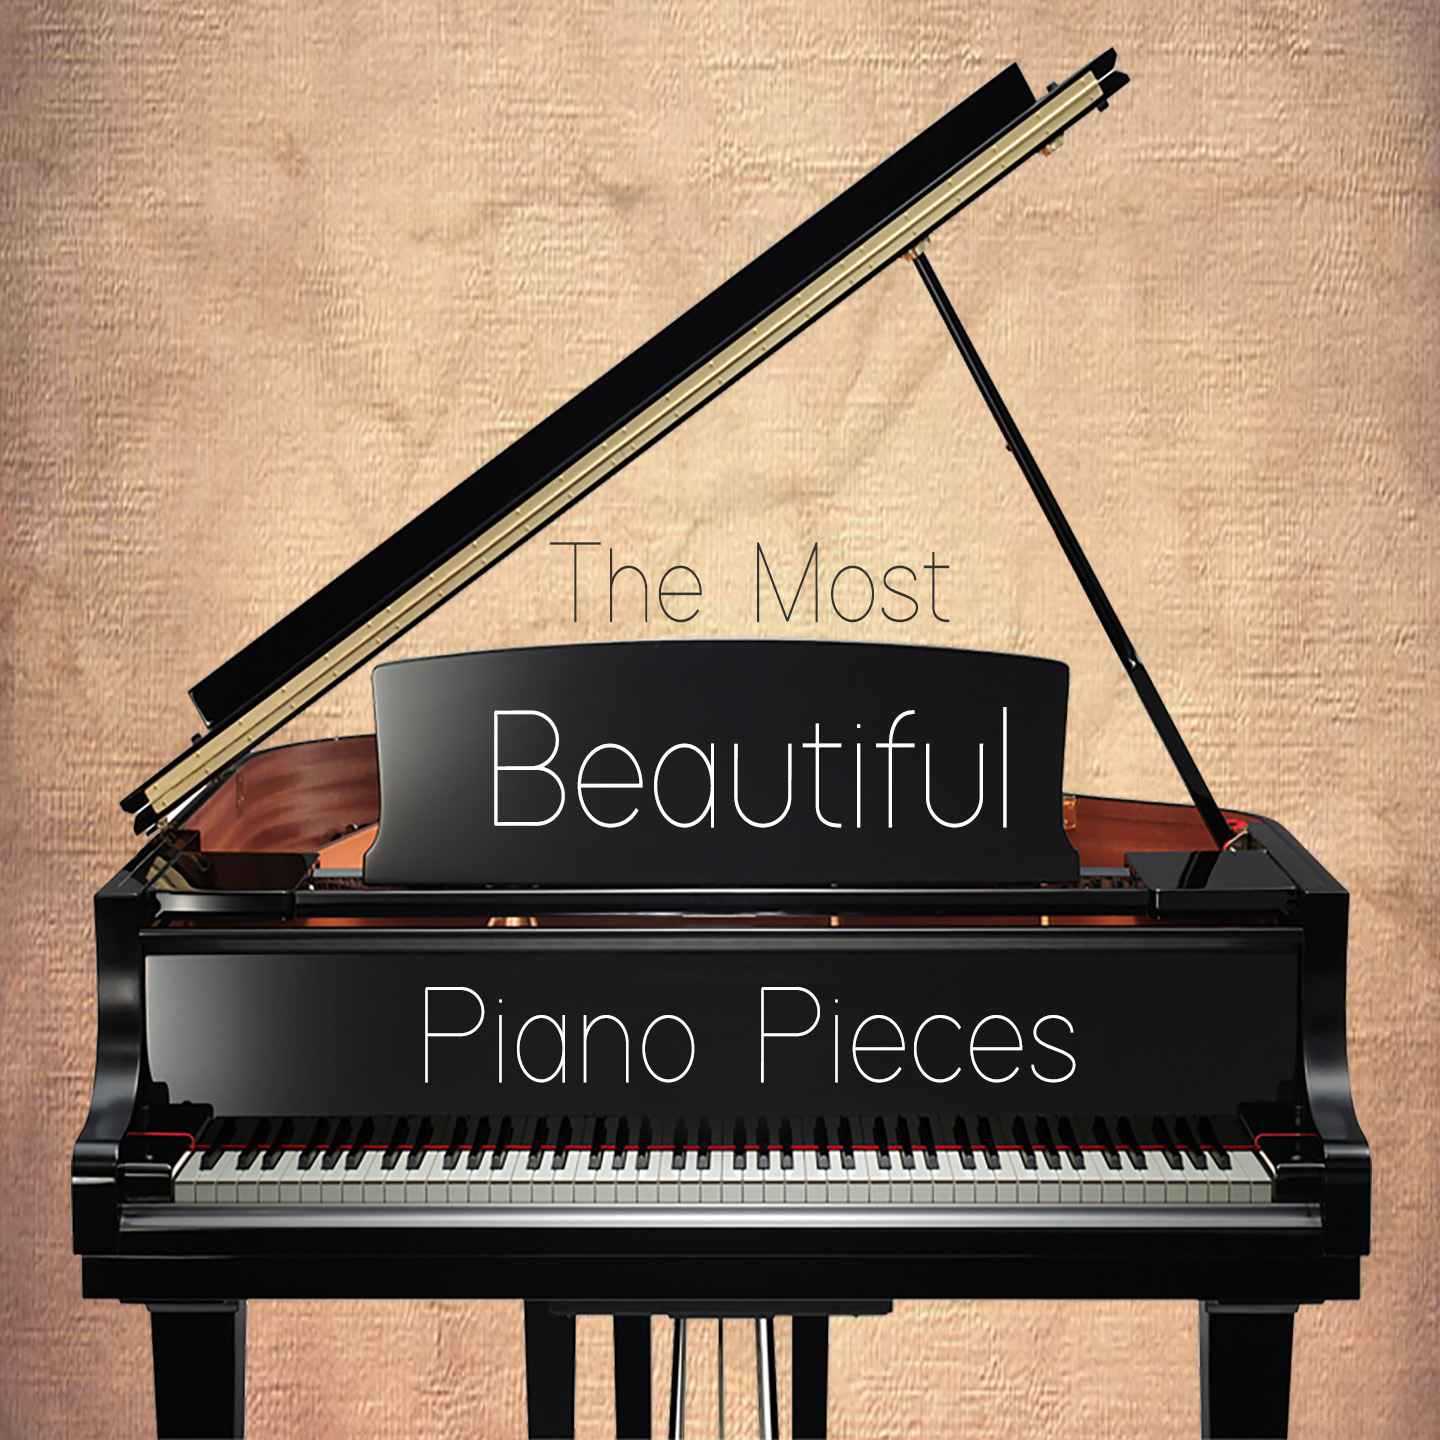 The Most Beautiful Piano Pieces